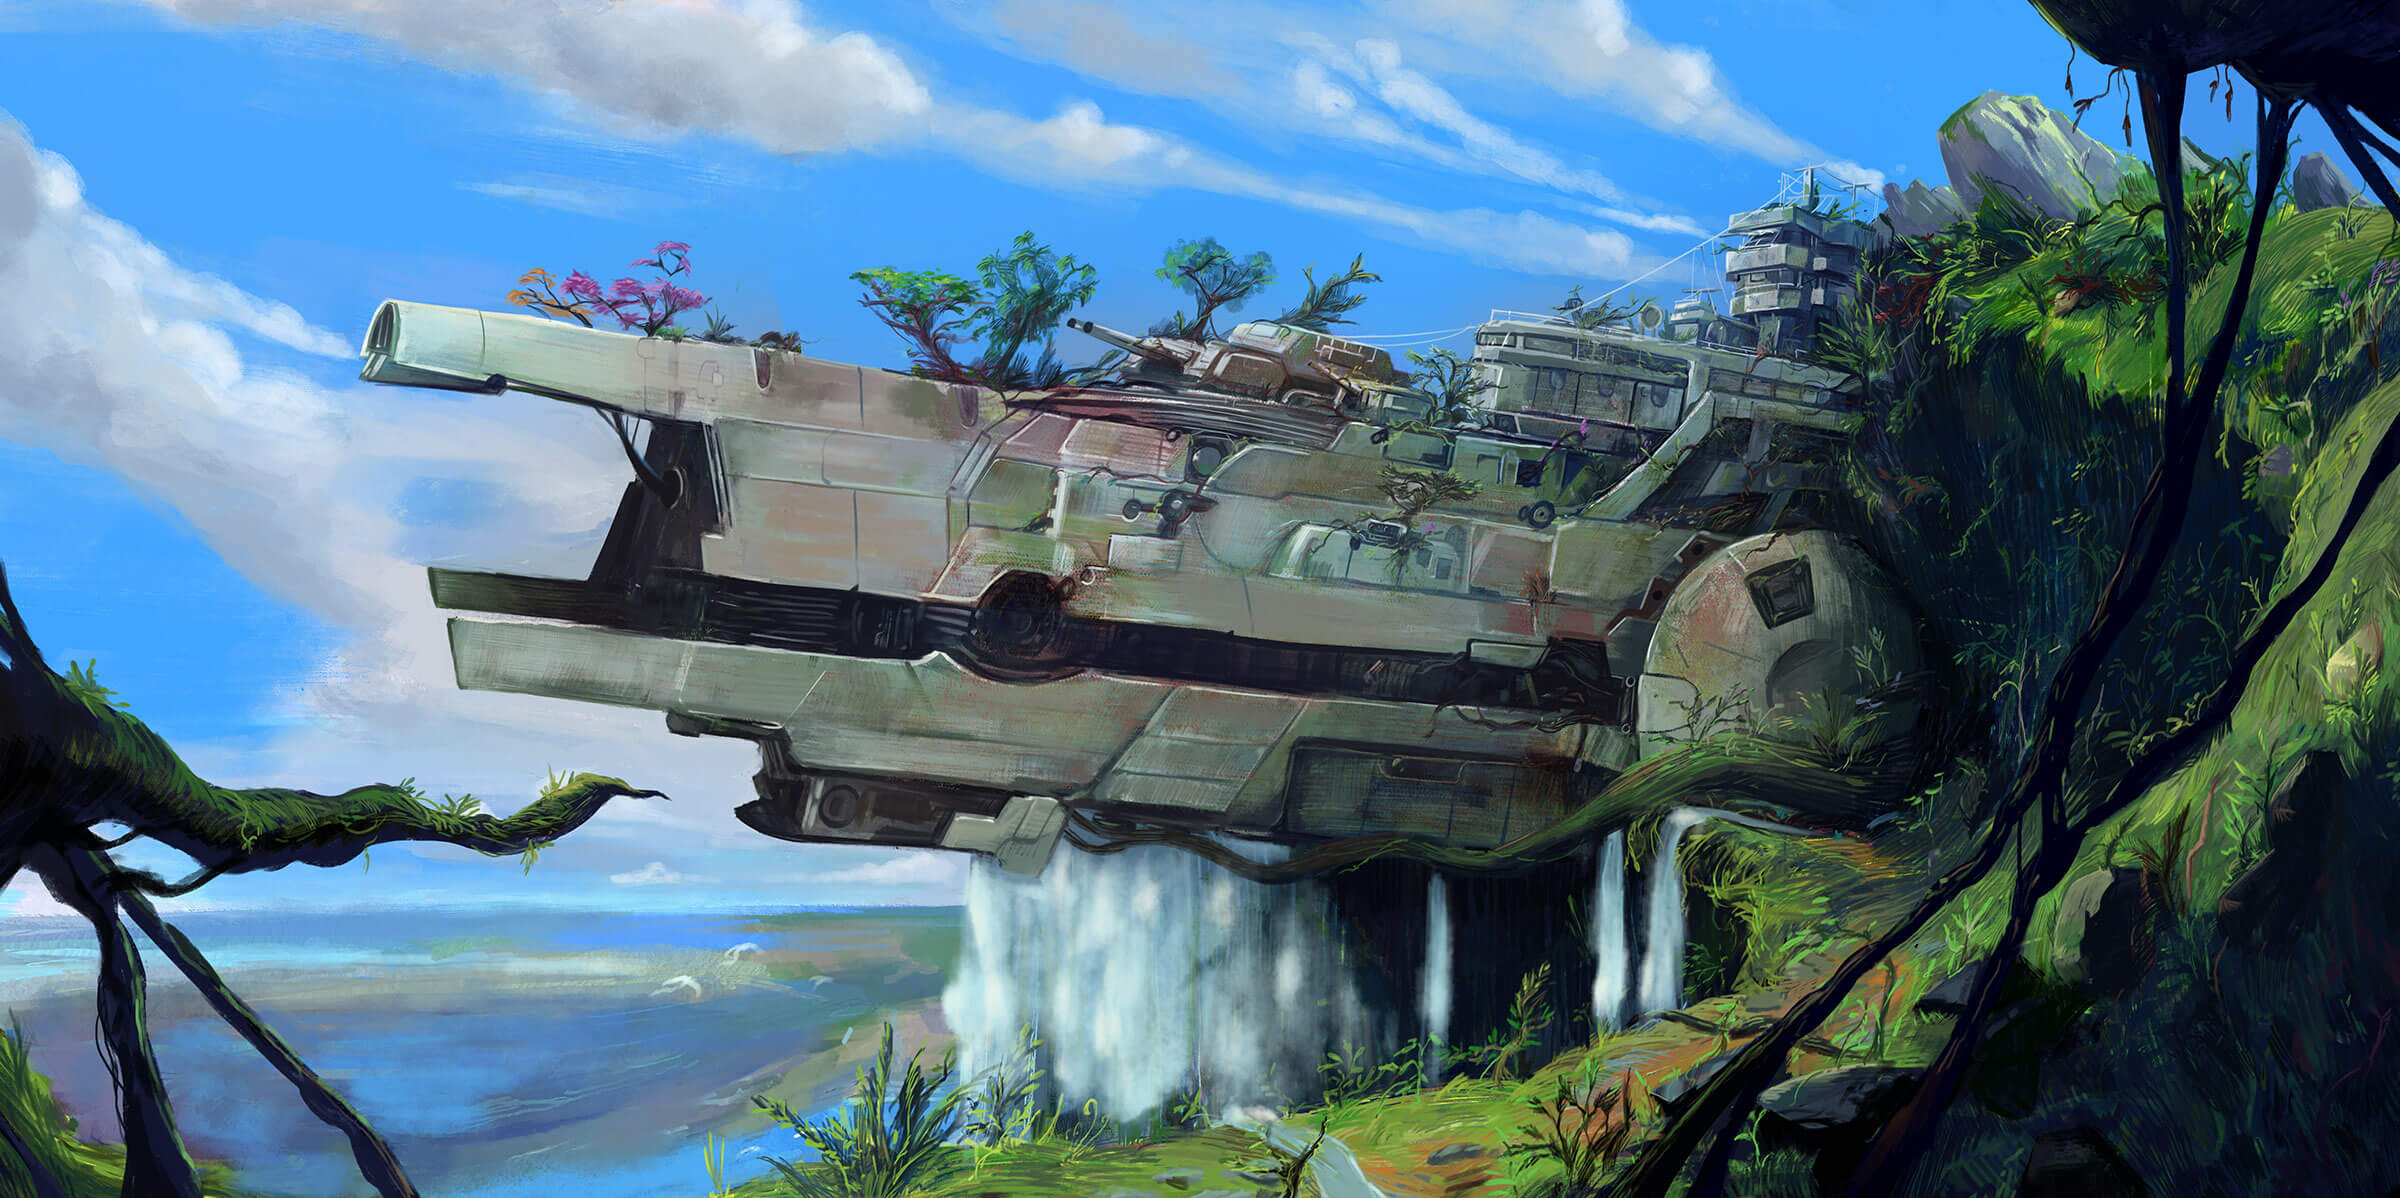 A futuristic warship overgrown with foliage lies abandoned near a waterfall.